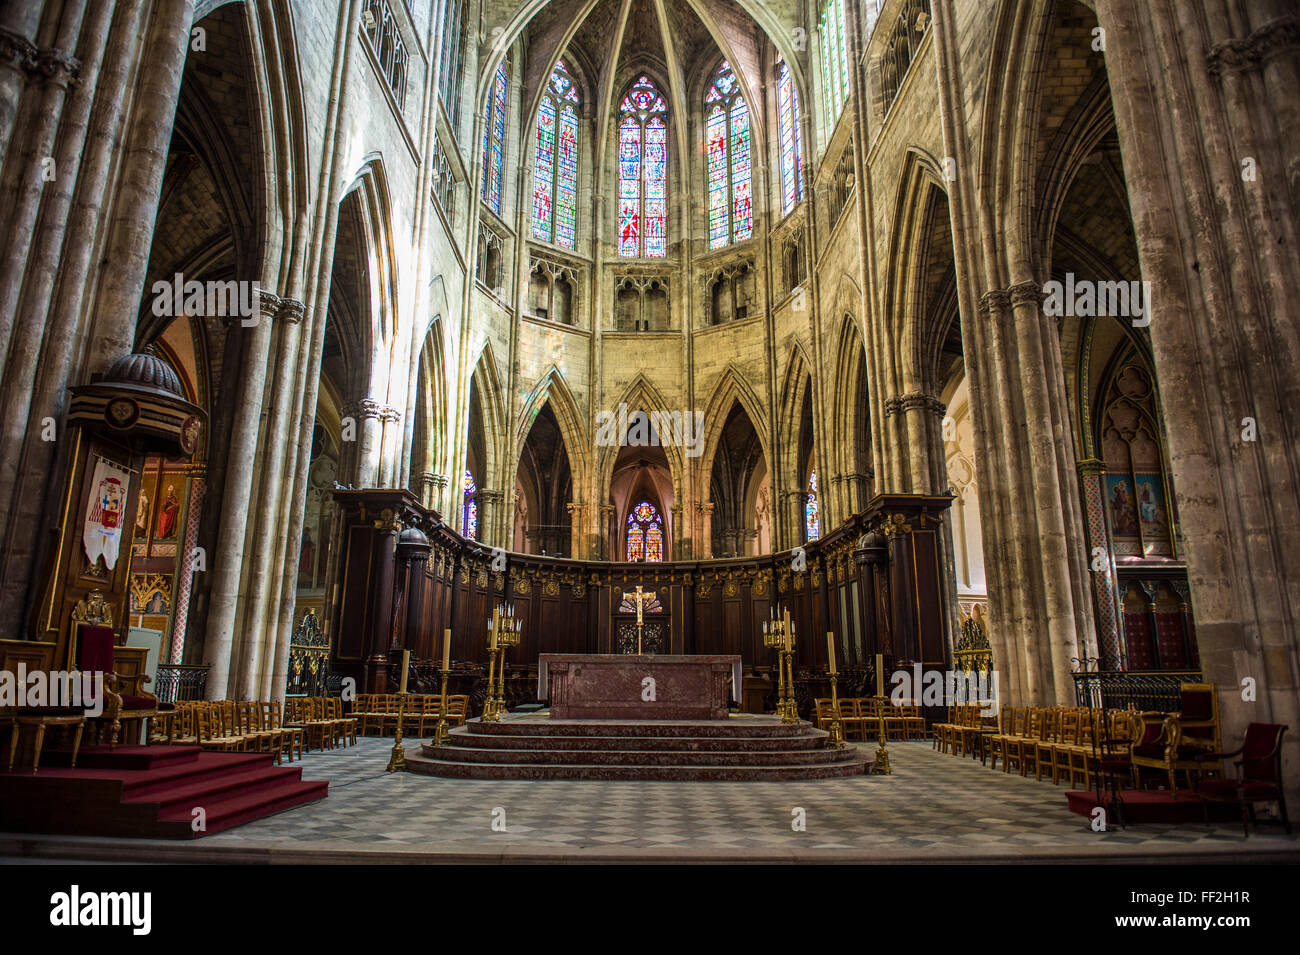 Interior of the CathedraRM of Bordeaux, Aquitaine, France, Europe - Stock Image